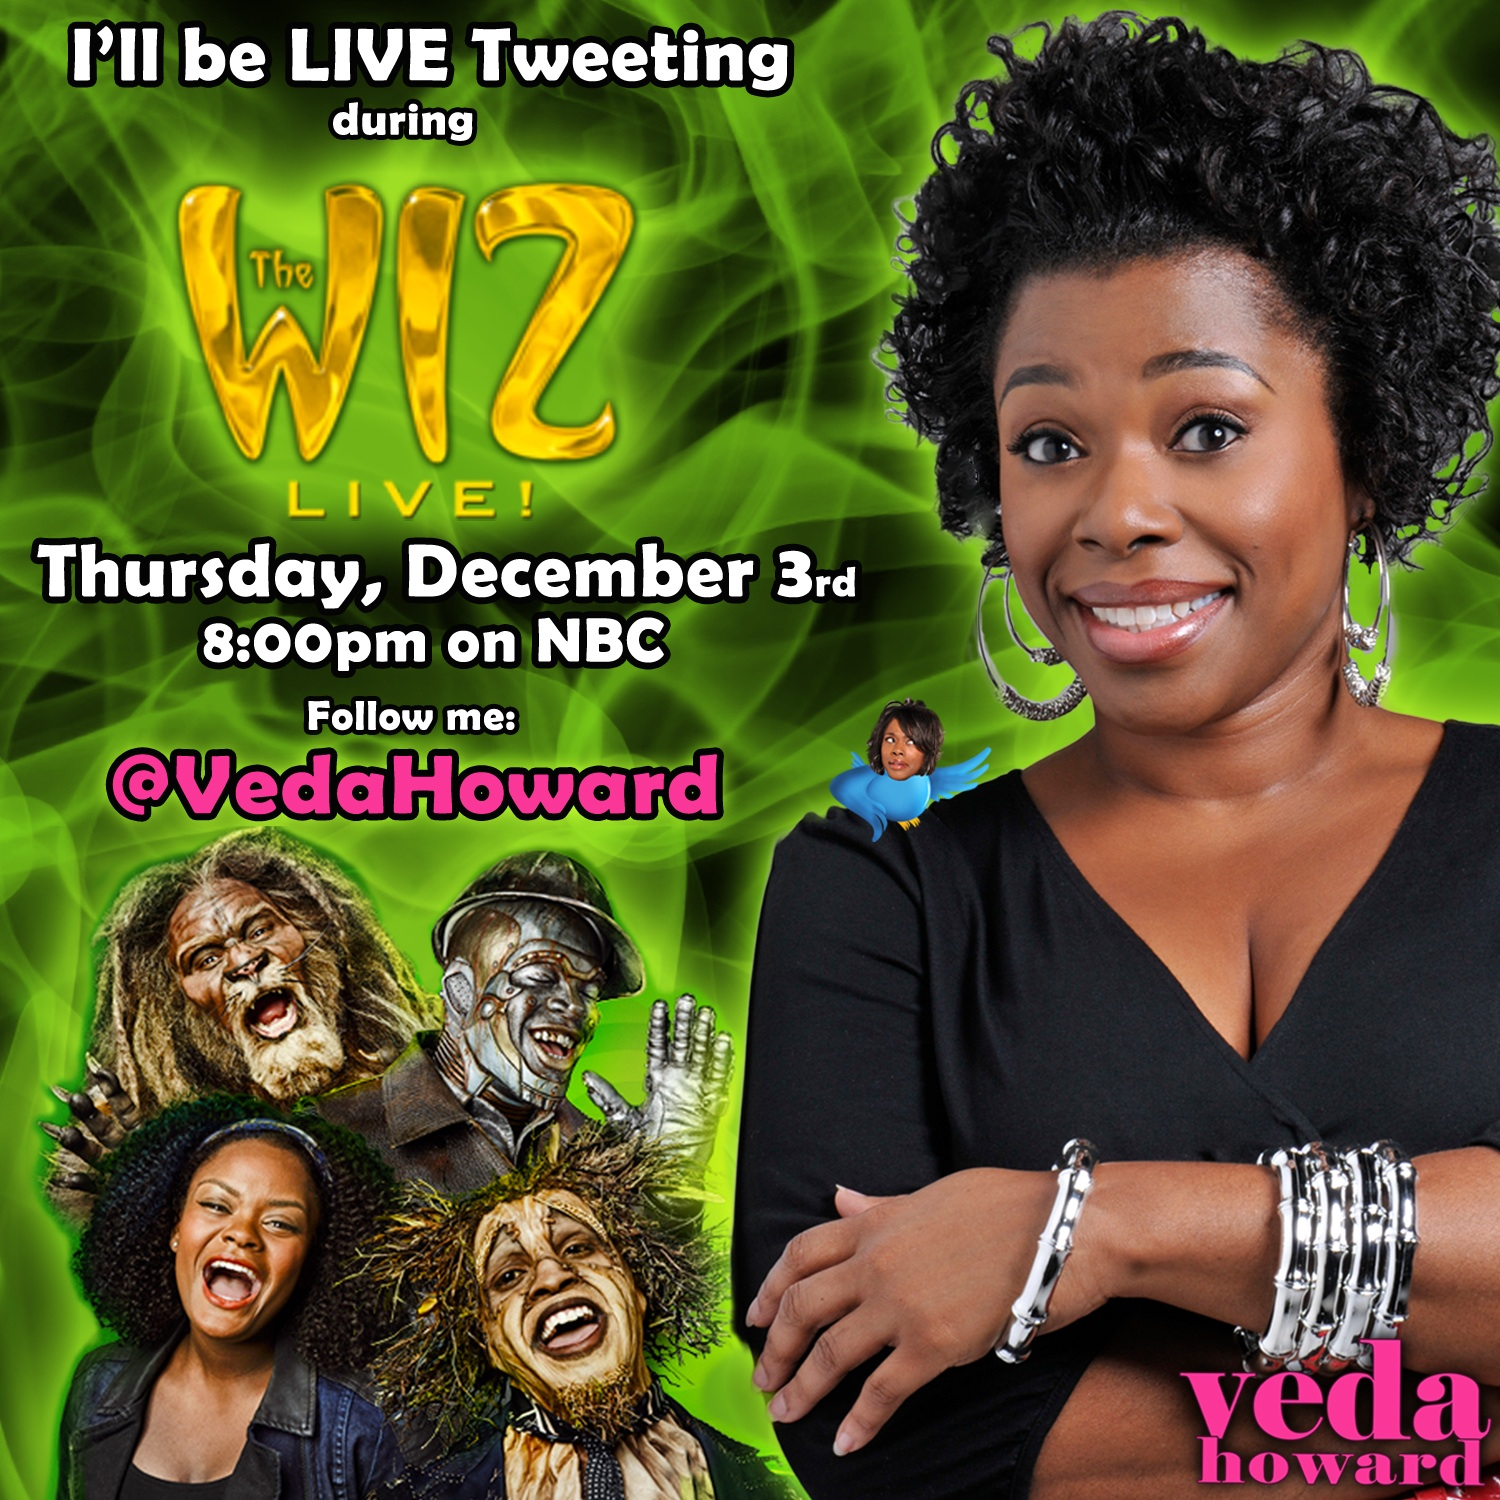 The Wiz LIVE Twitter